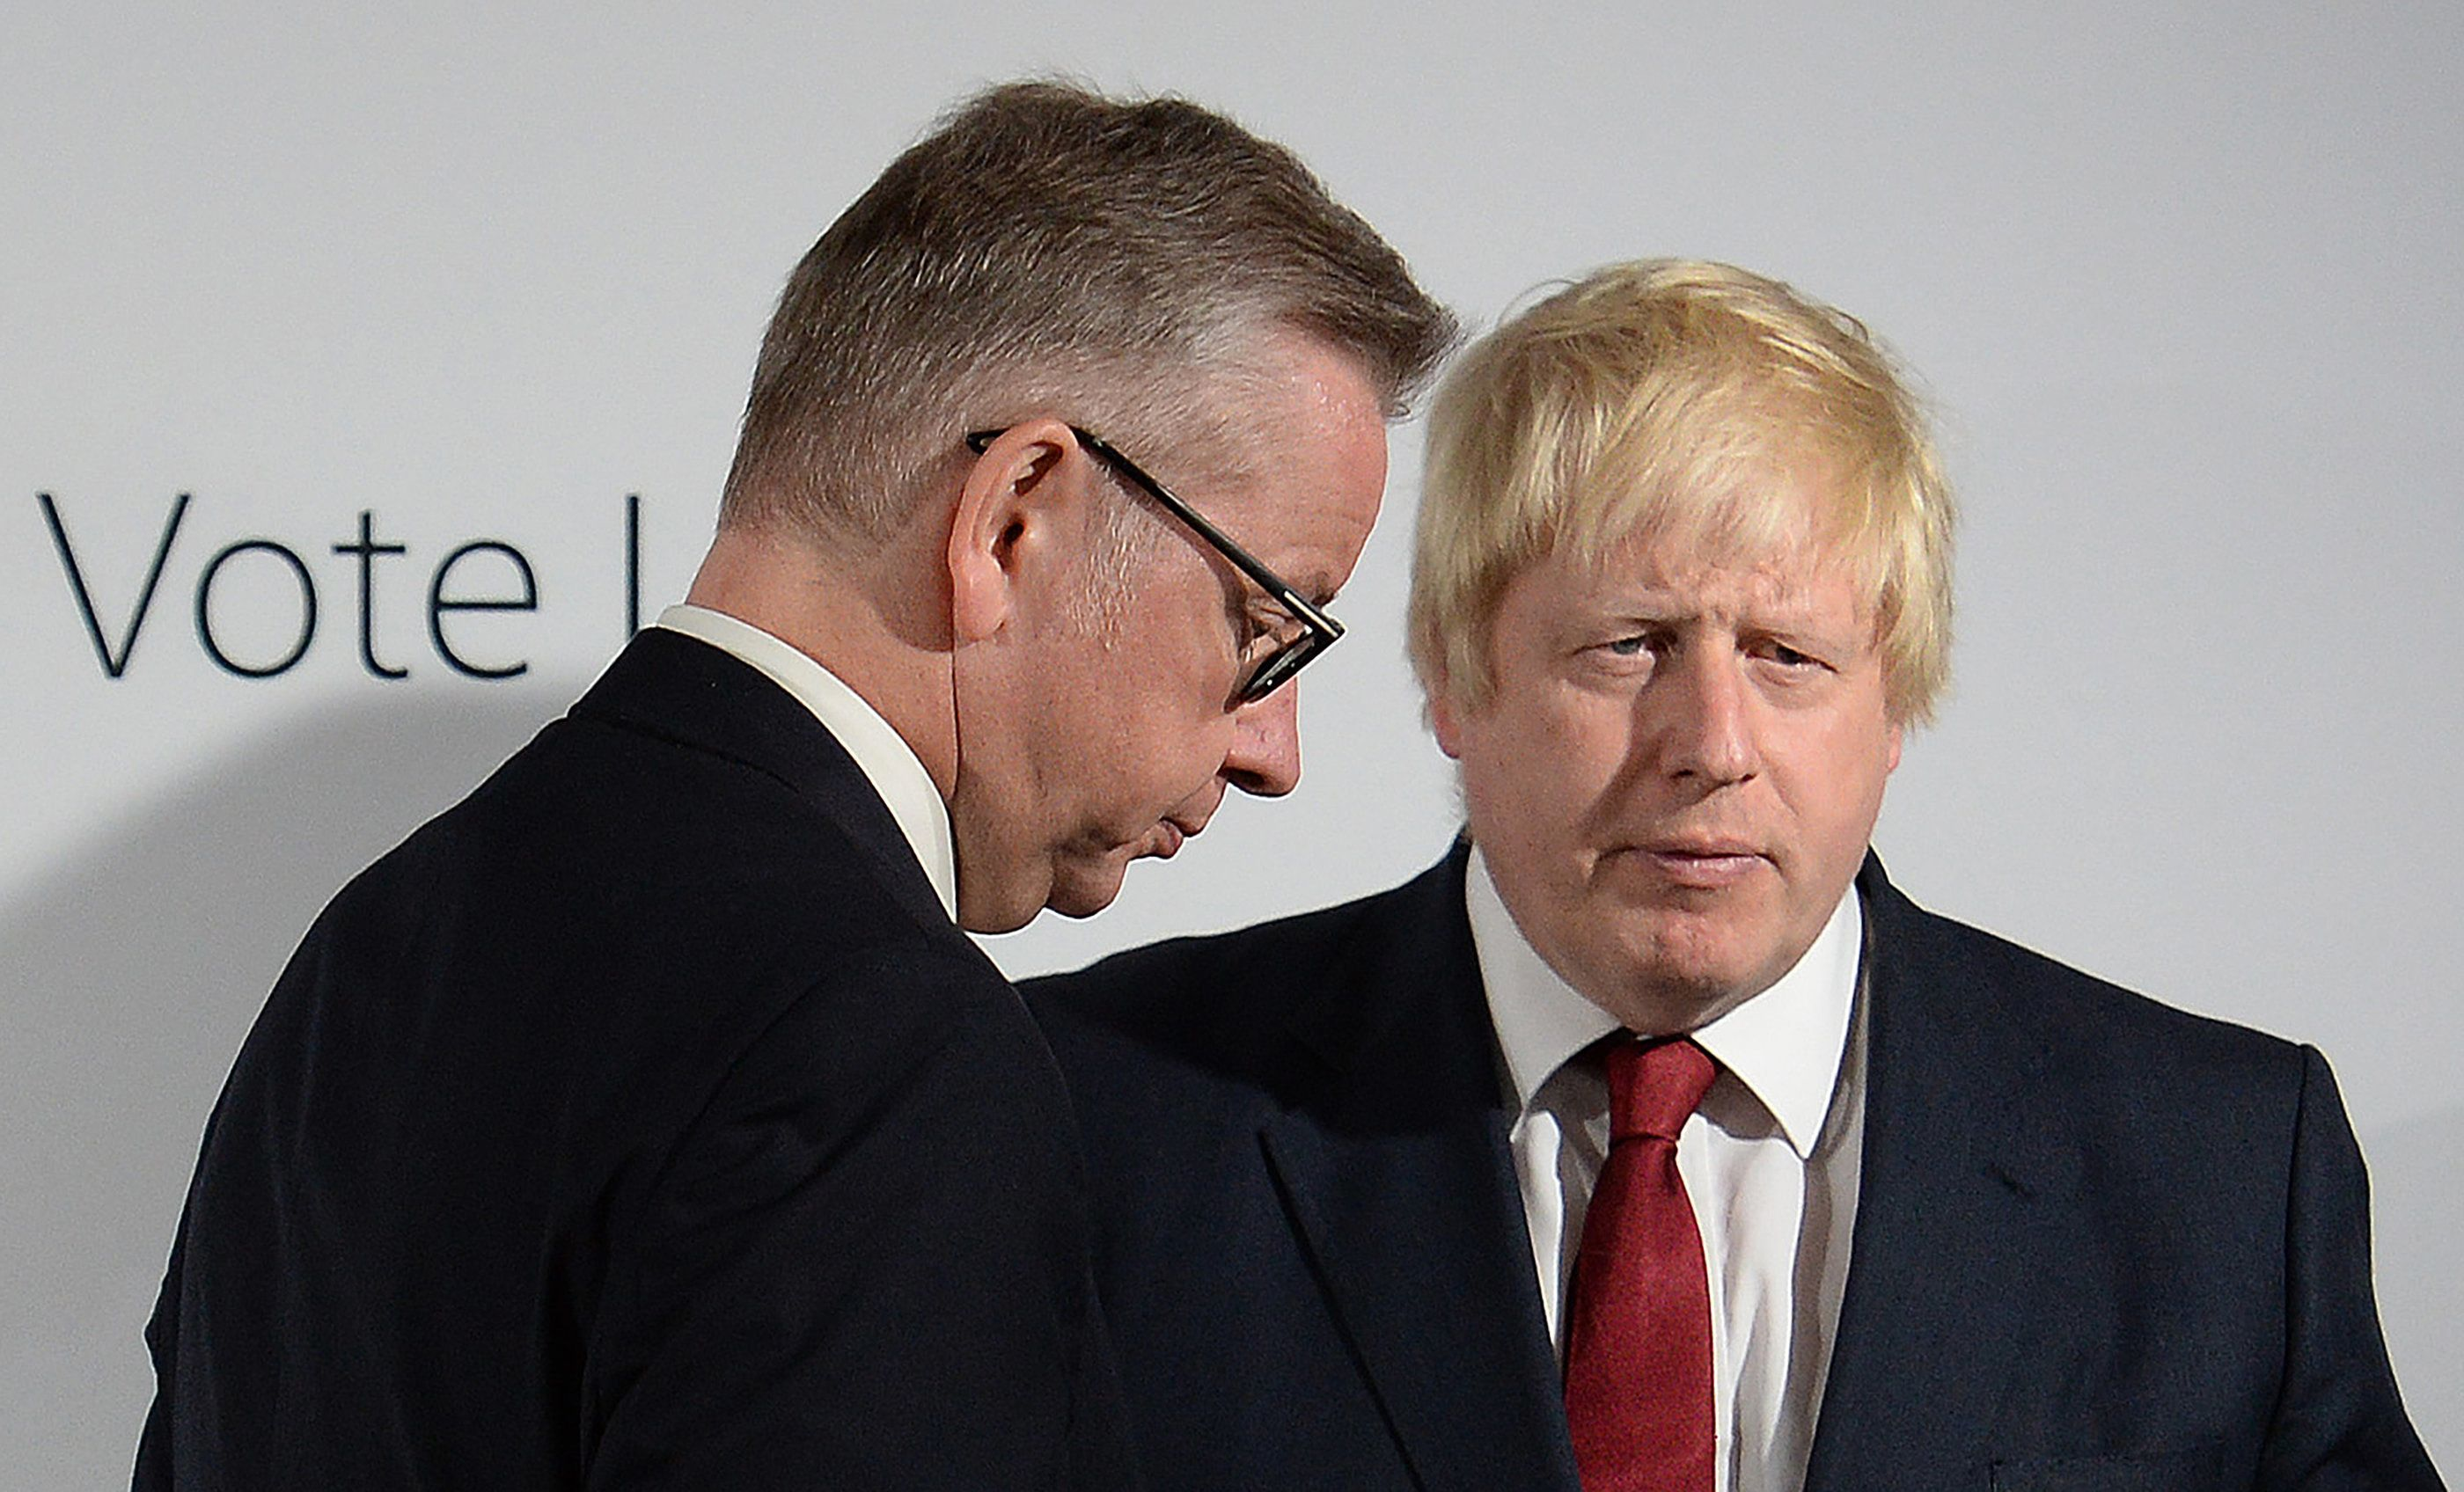 Michael Gove was accused of 'treachery' for standing against Boris Johnson in